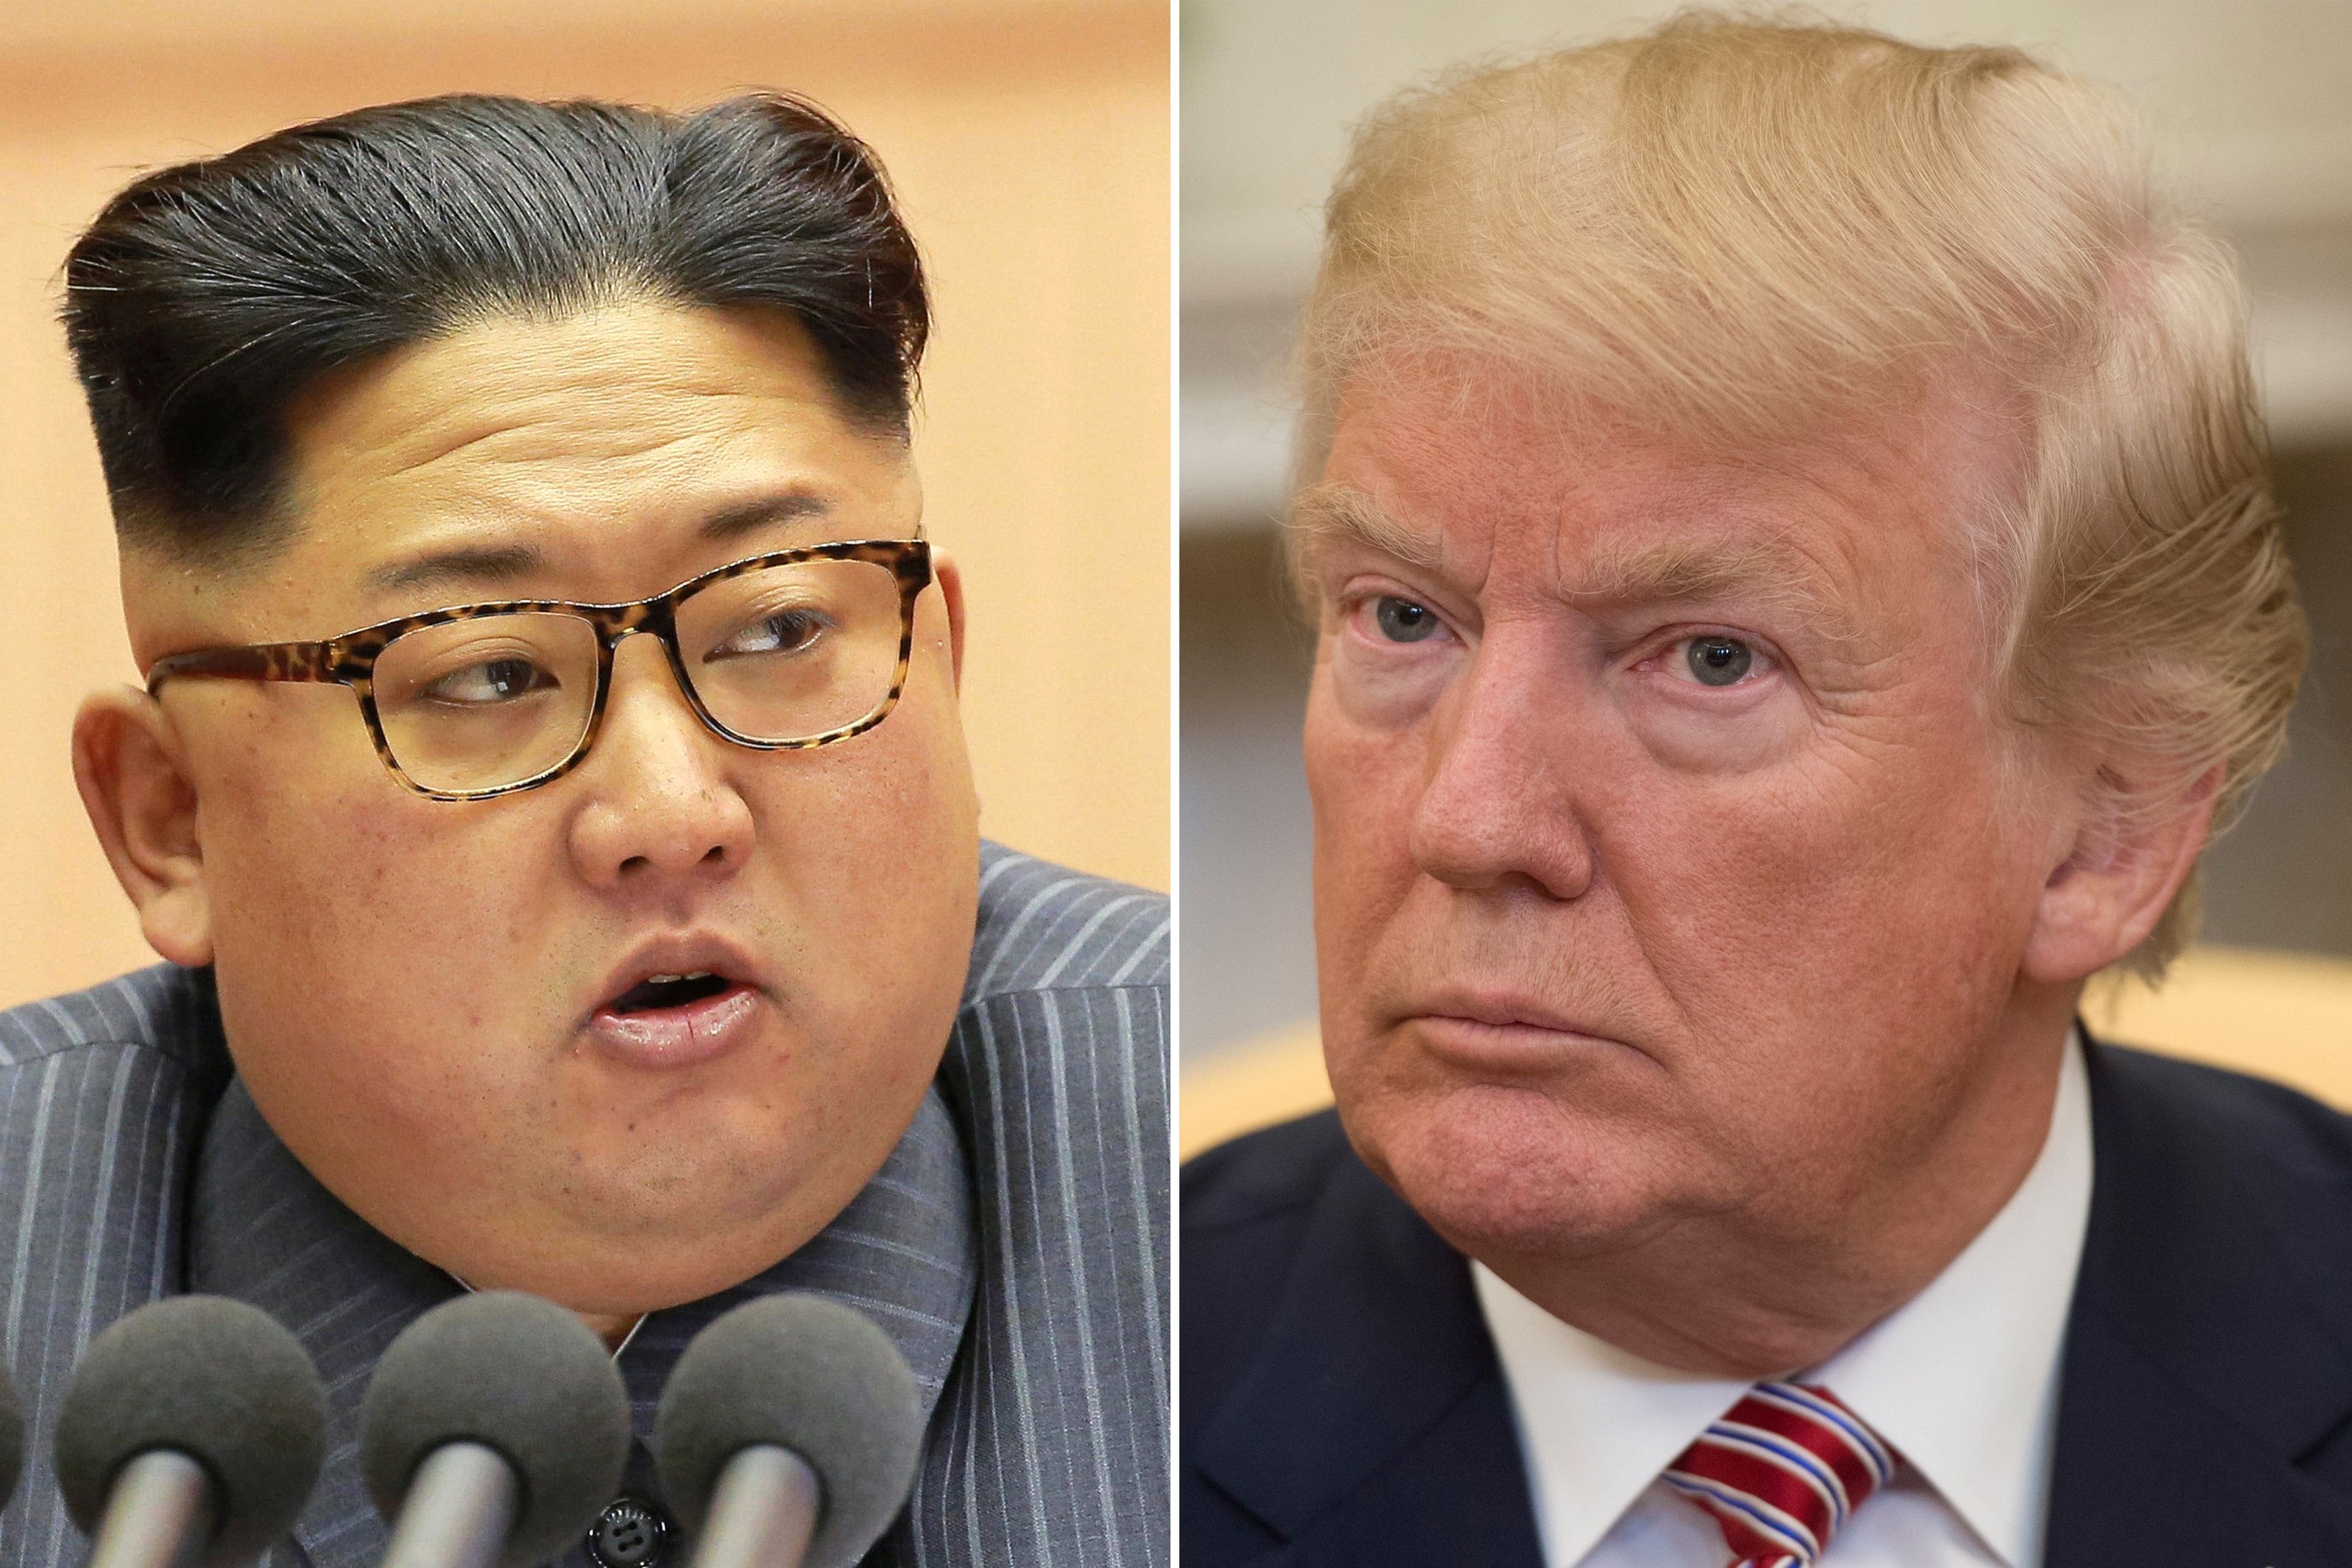 Trump Kim talks: United States surprised at 'dramatic' North Korea shift